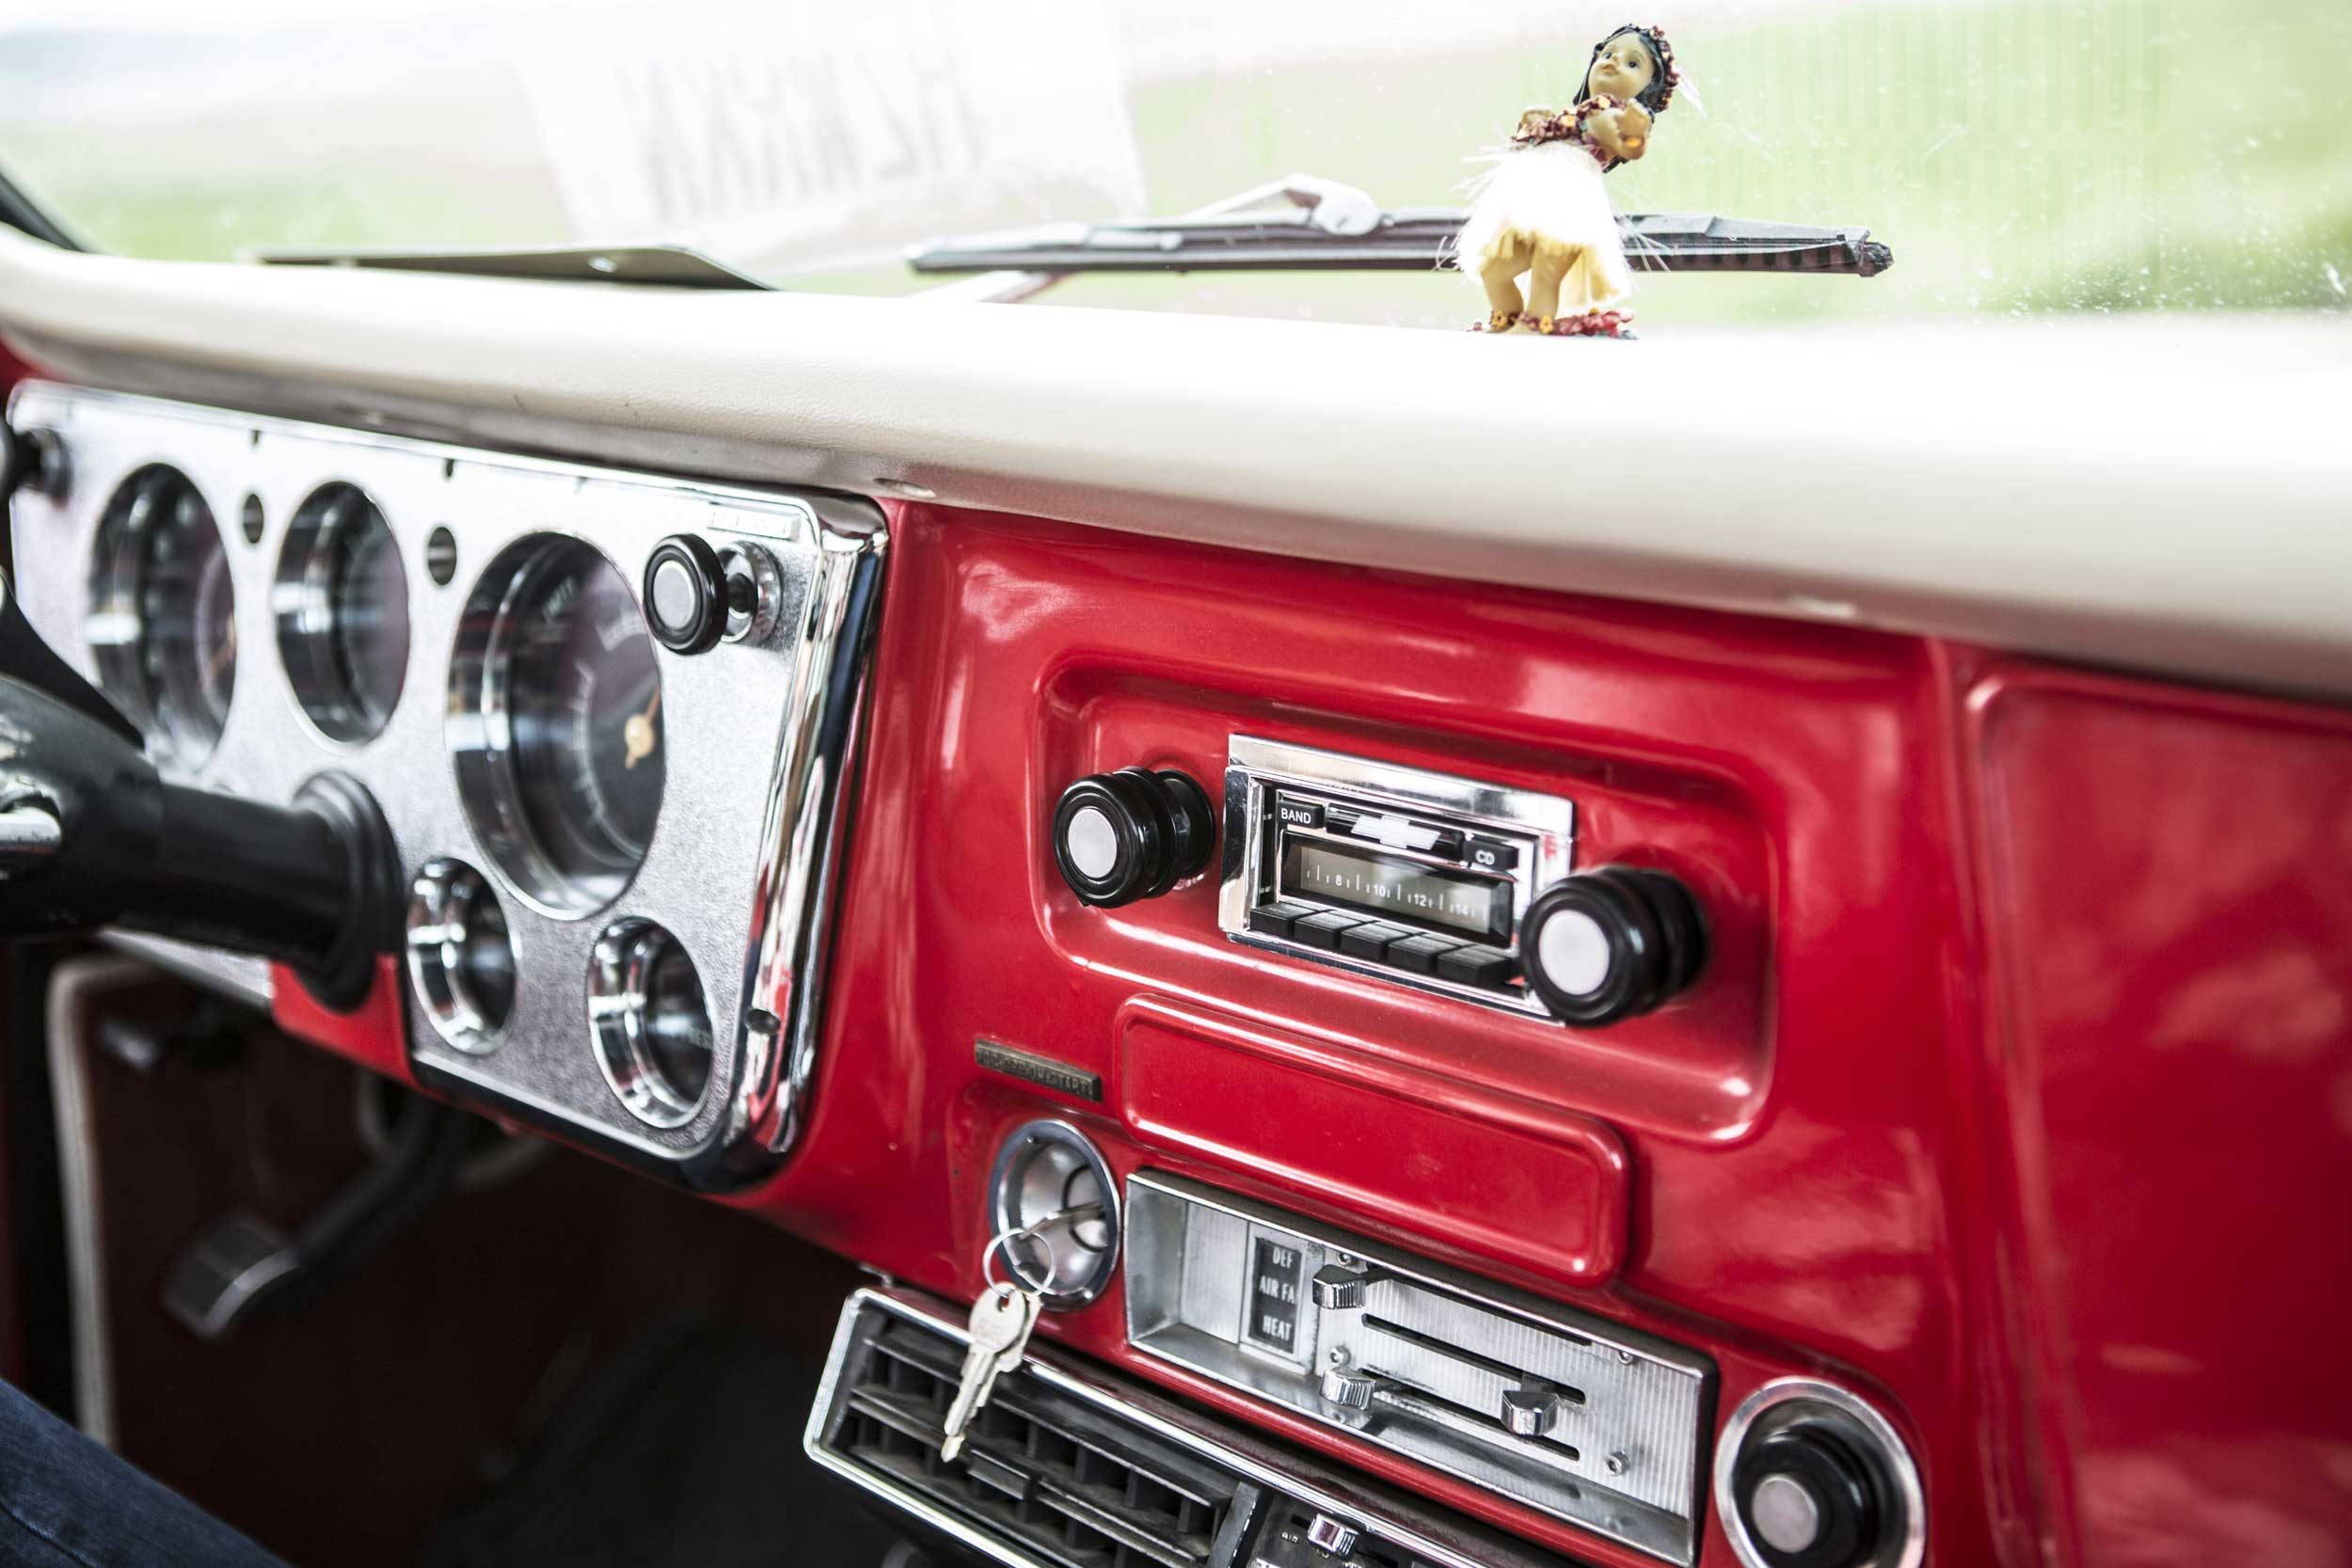 Red dashboard of old pickup truck with Hula girl.